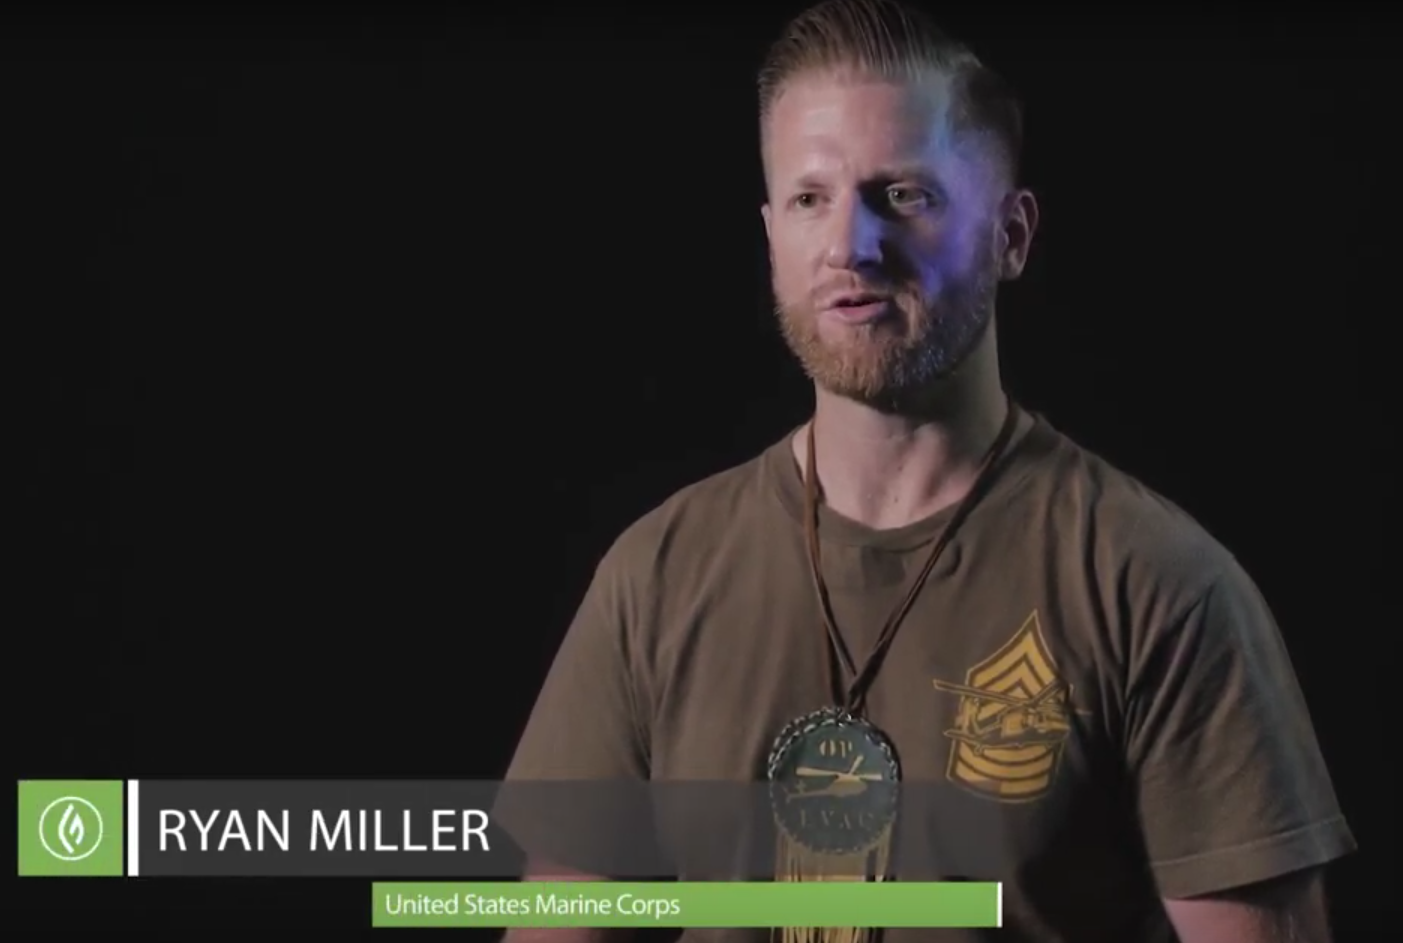 Ryan Miller, co-founder of Operation EVAC